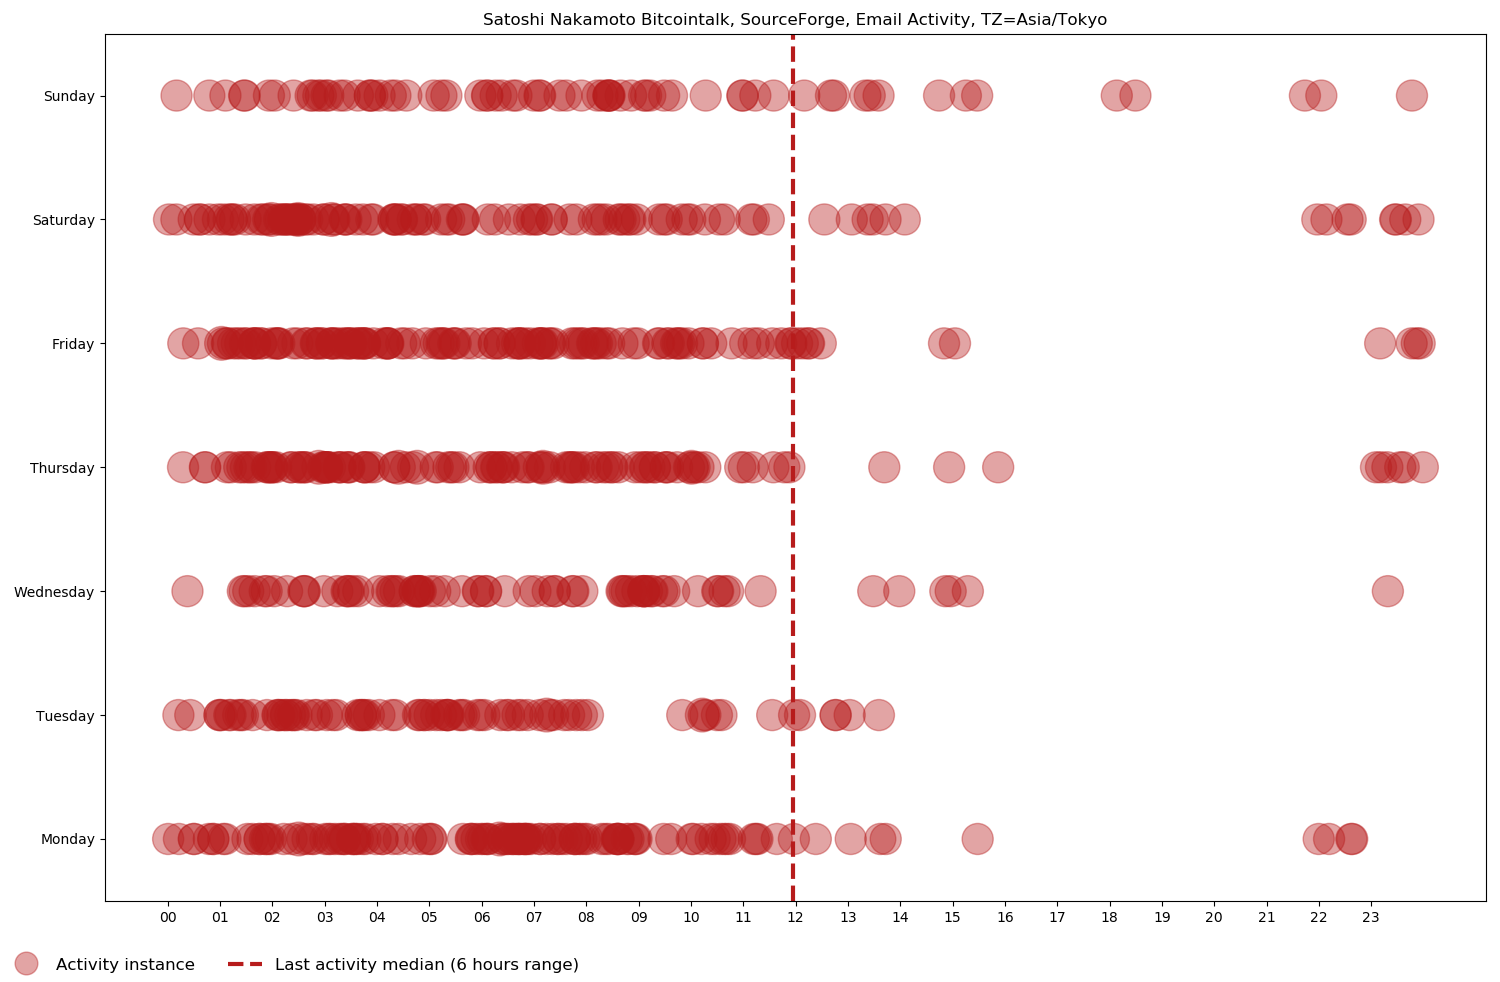 Scatter chart of Satoshi Nakamoto's Bitcointalk, SourceForge, and email activity, from the first one on October 31, 2008 to the last one on December 13, 2010, based on day of the week and time of day in the Asia/Tokyo time zone.